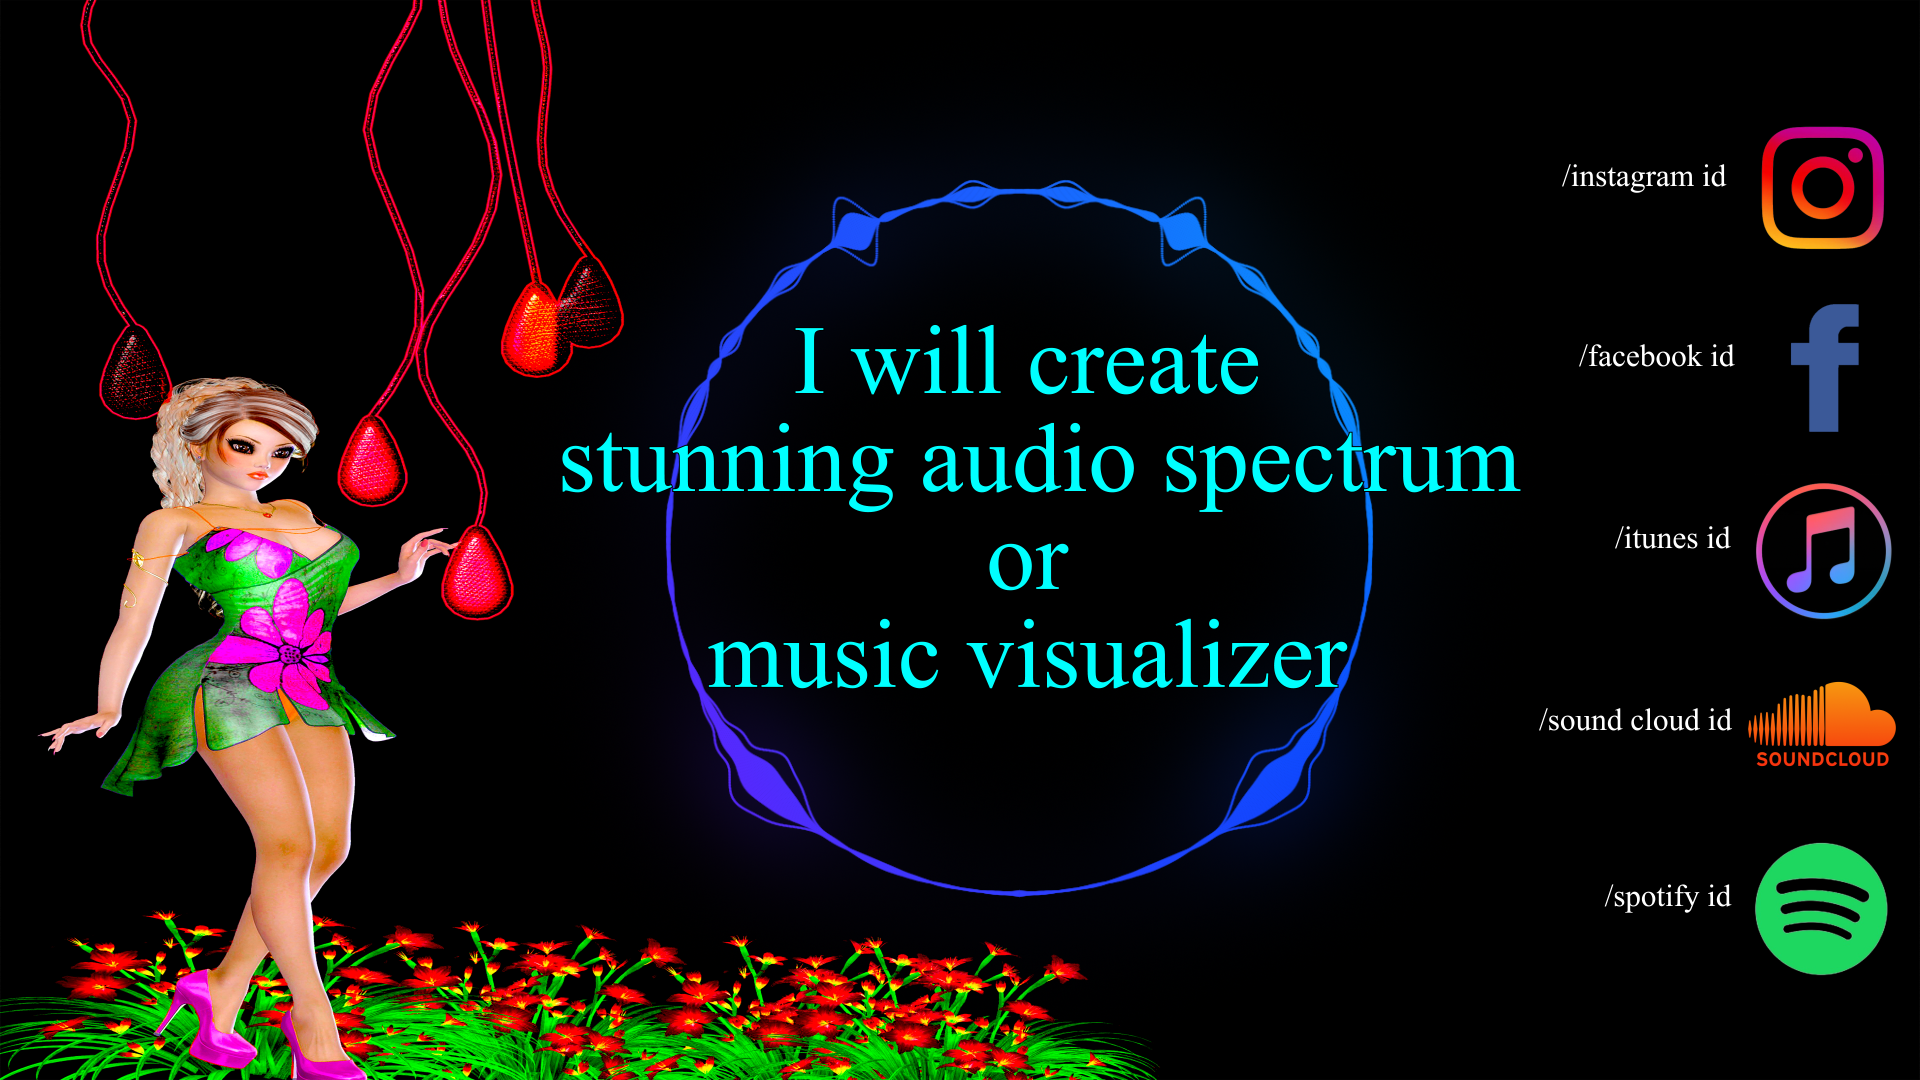 I can create stunning audio spectrum or music visualizer